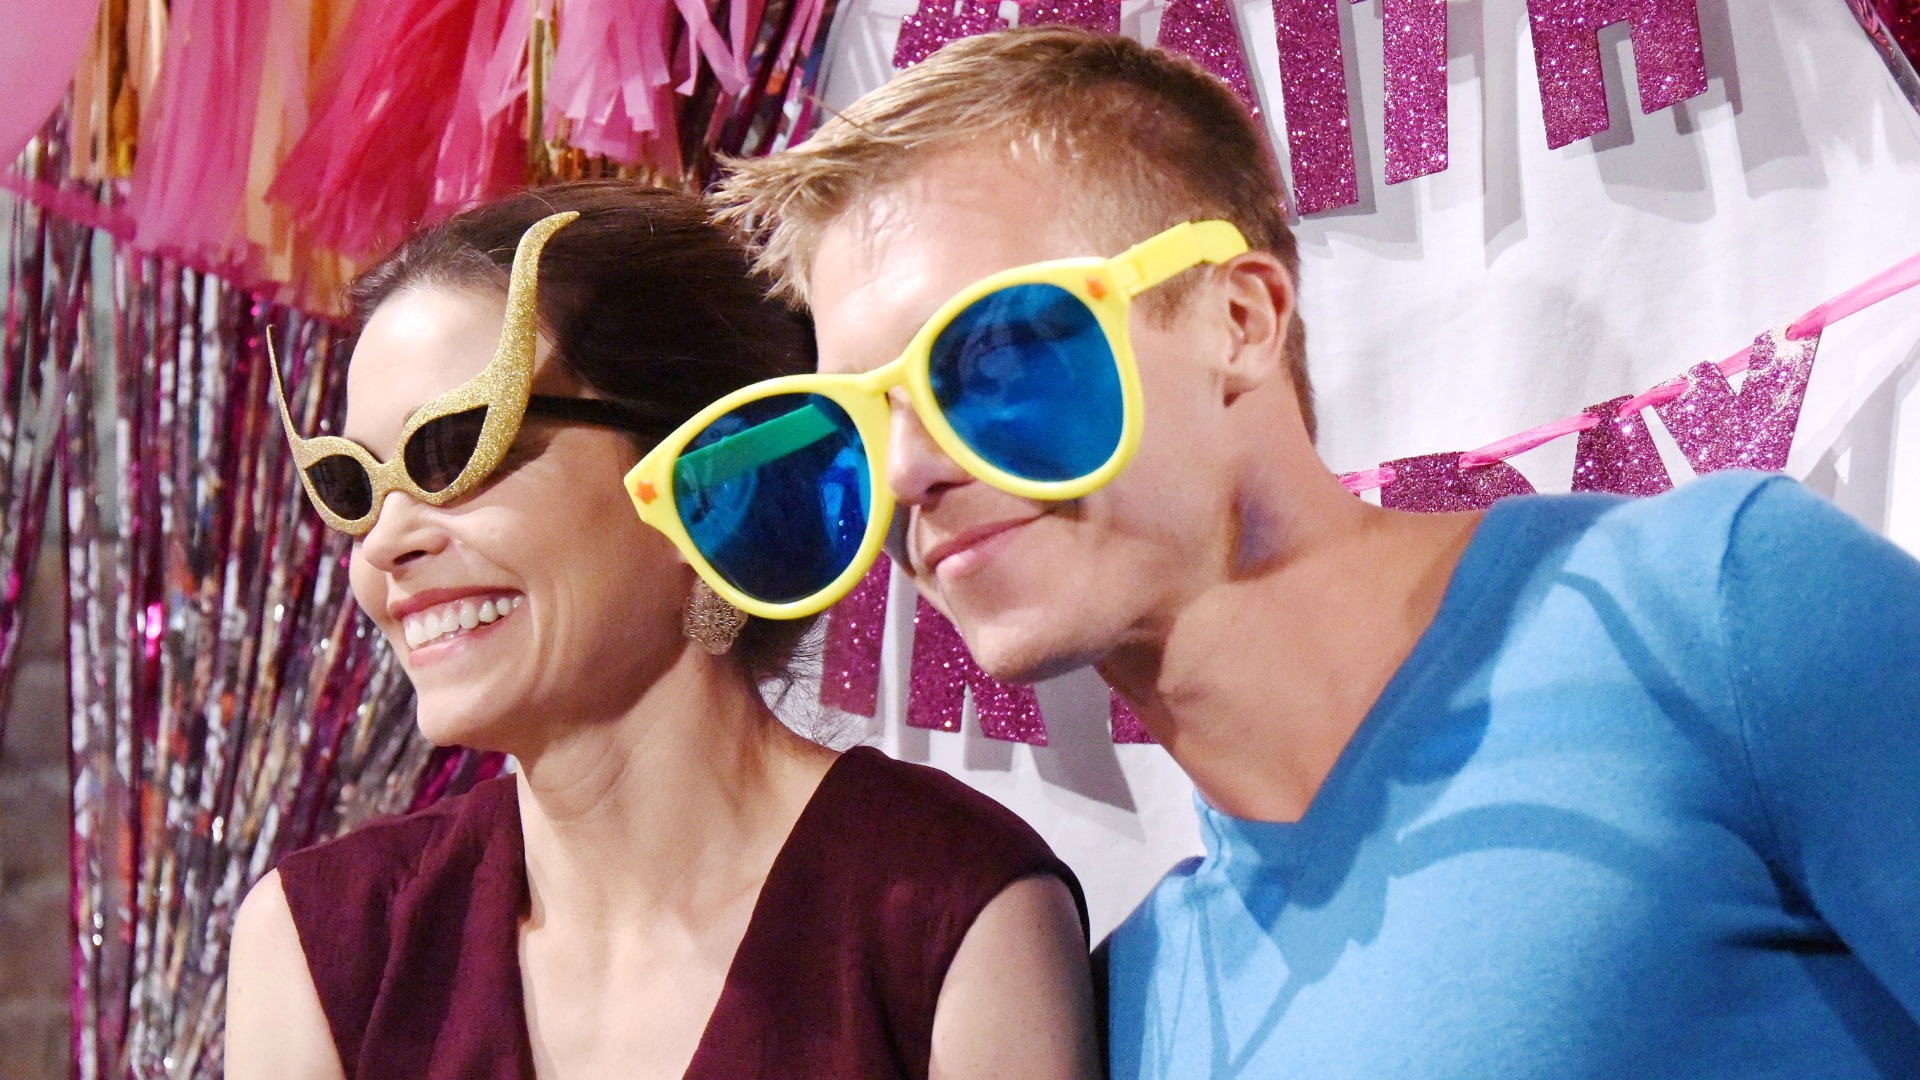 Victoria (Amelia Heinle) and Travis (Michael Roark) goofed around in wacky sunglasses.